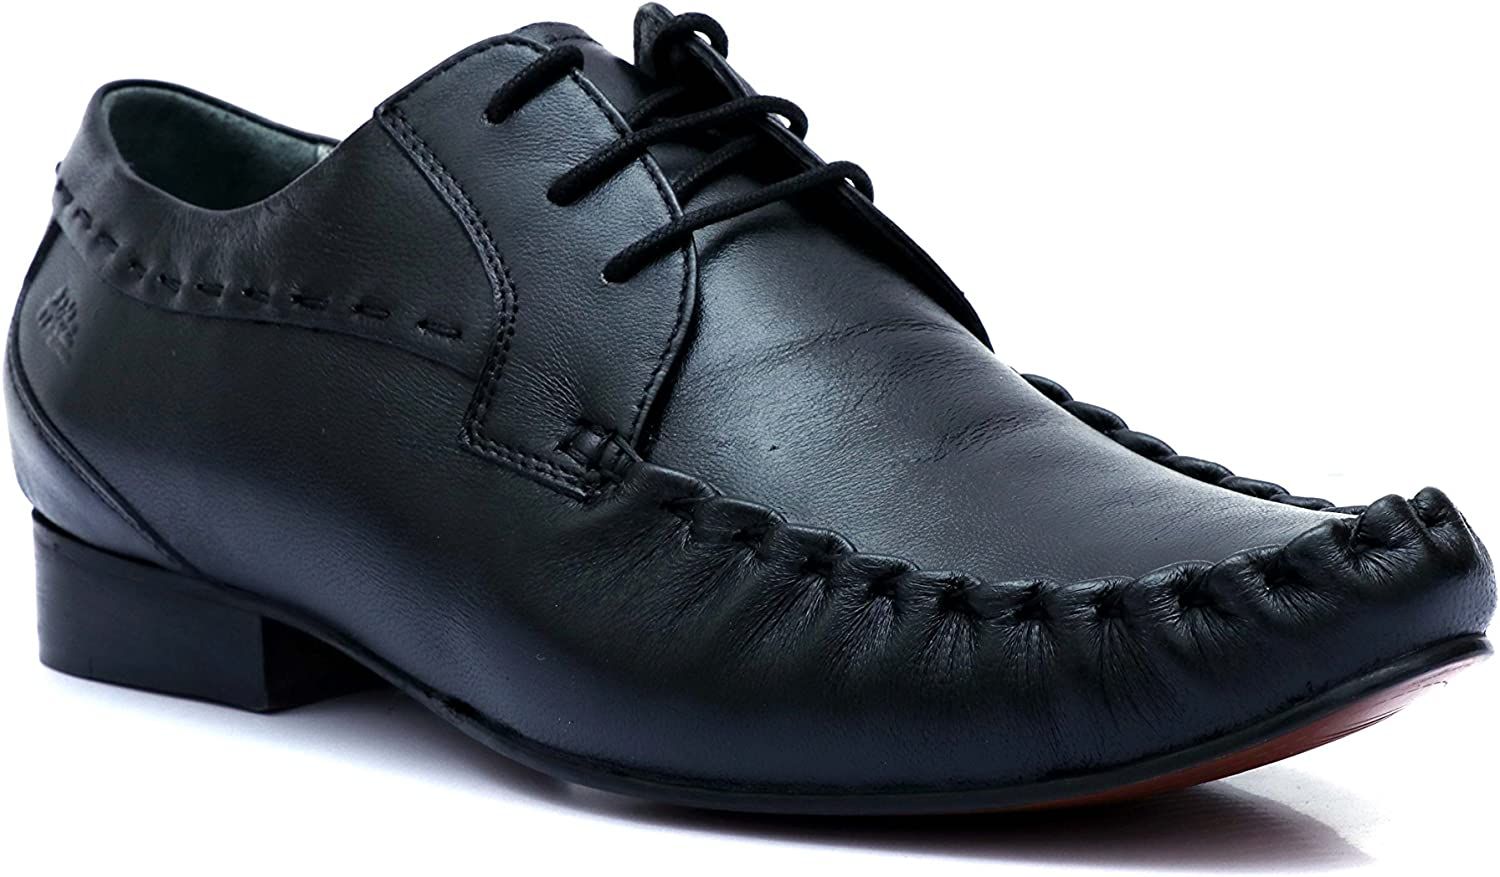 Hitz Mens Formal shoes Black 7852